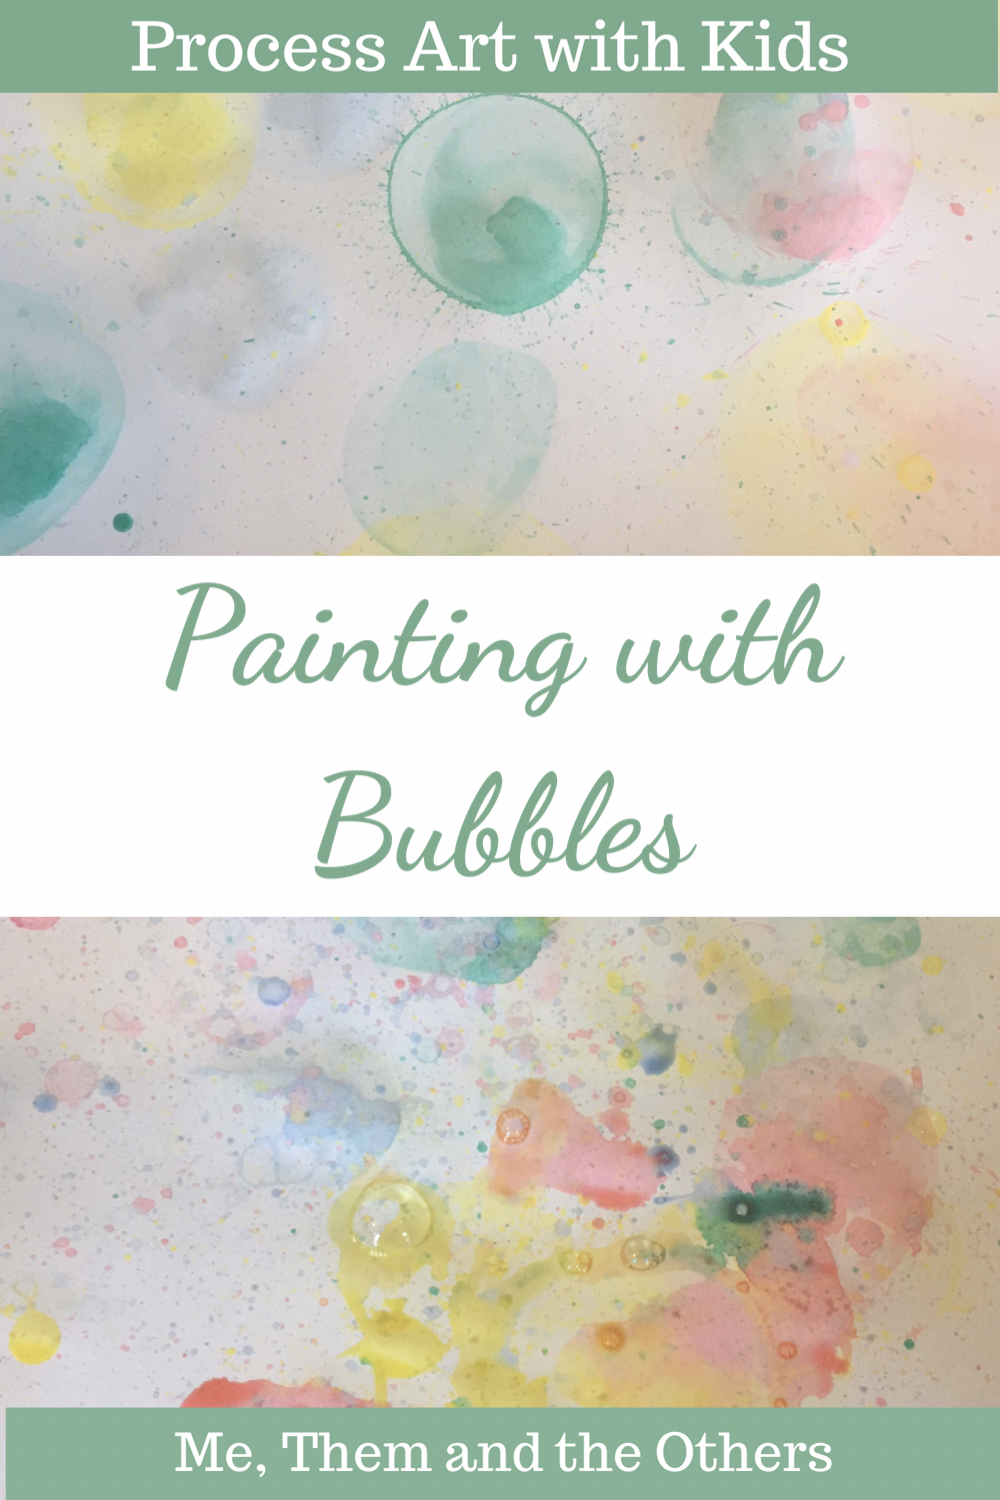 Process art: Painting with bubbles